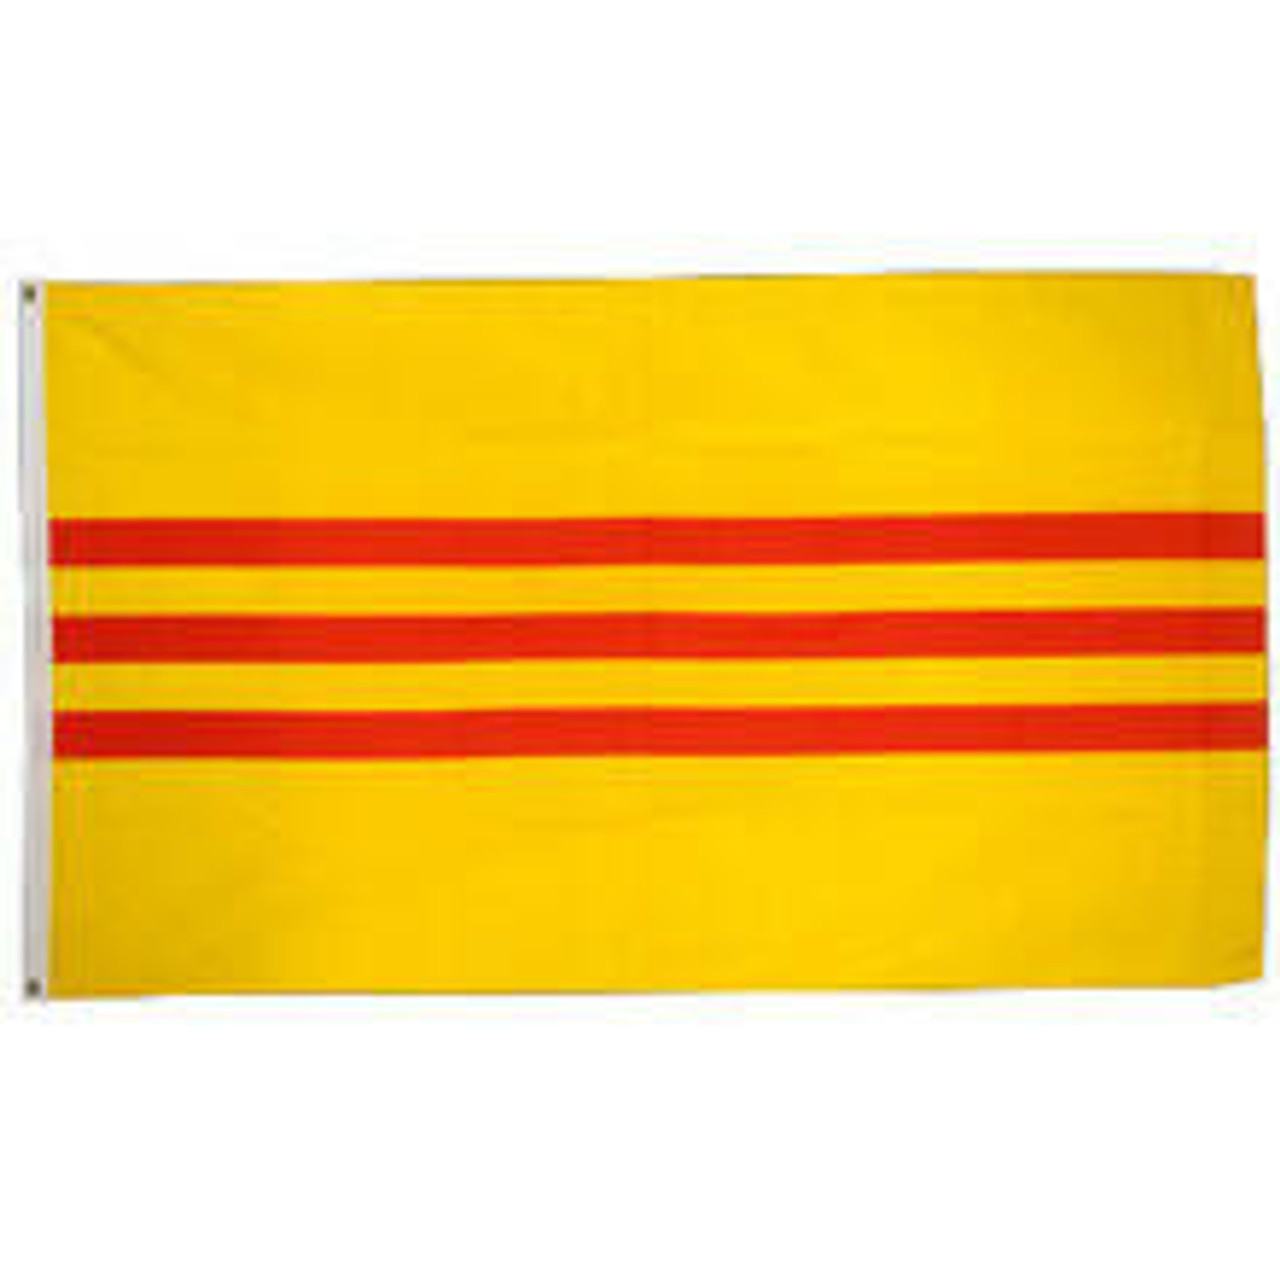 Red and yellow South Vietnam Flag nylon with sewn edges and polyester canvas heading with brass grommets.